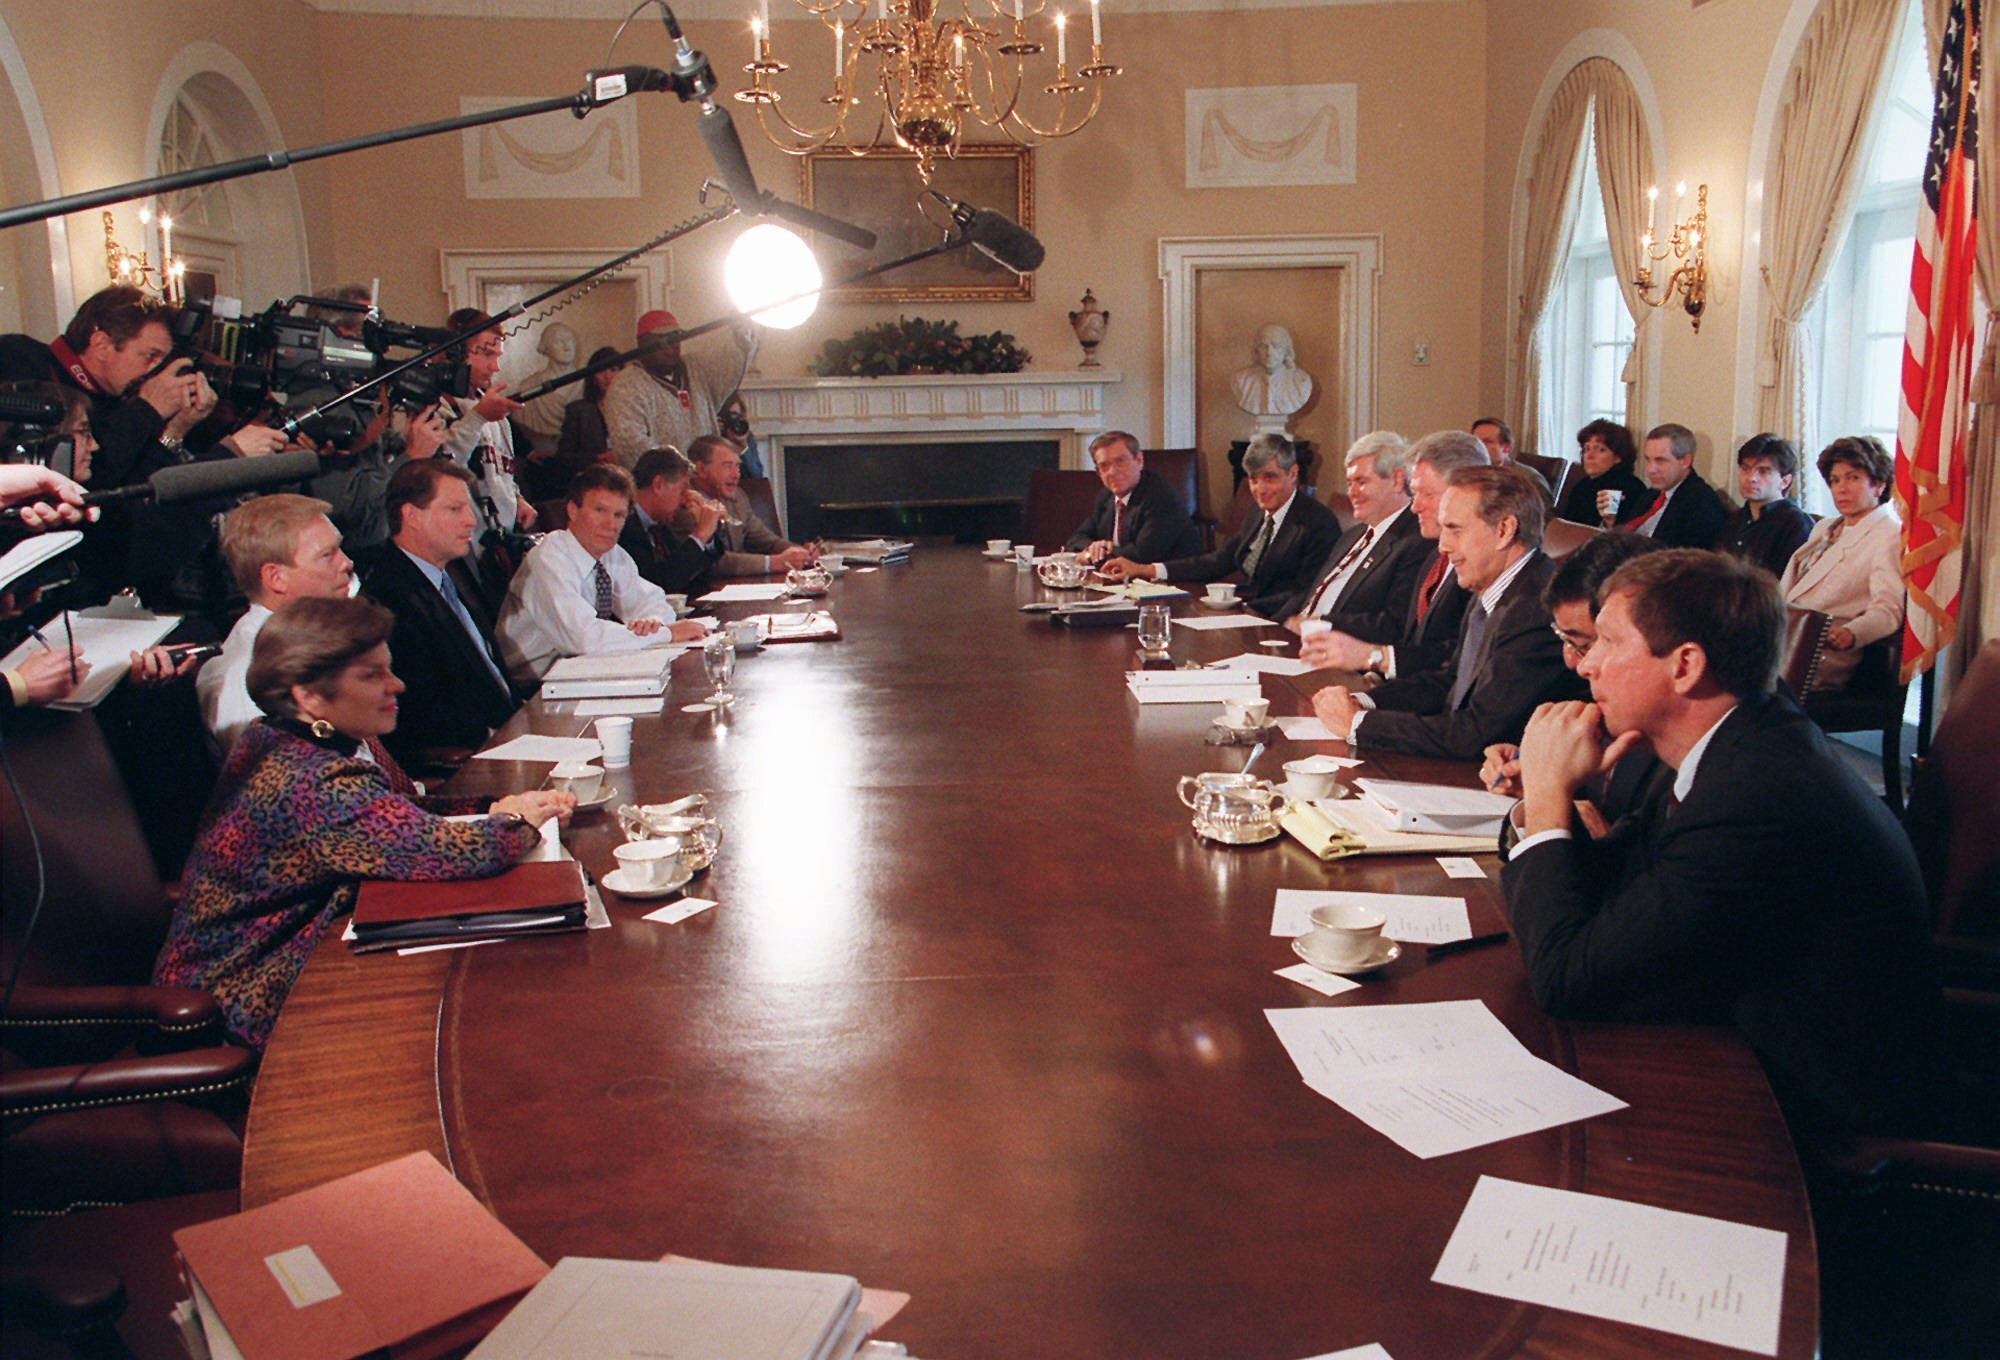 President Clinton and bipartisan leaders meet at the White House on Dec. 30, 1995, for talks on the federal budget.